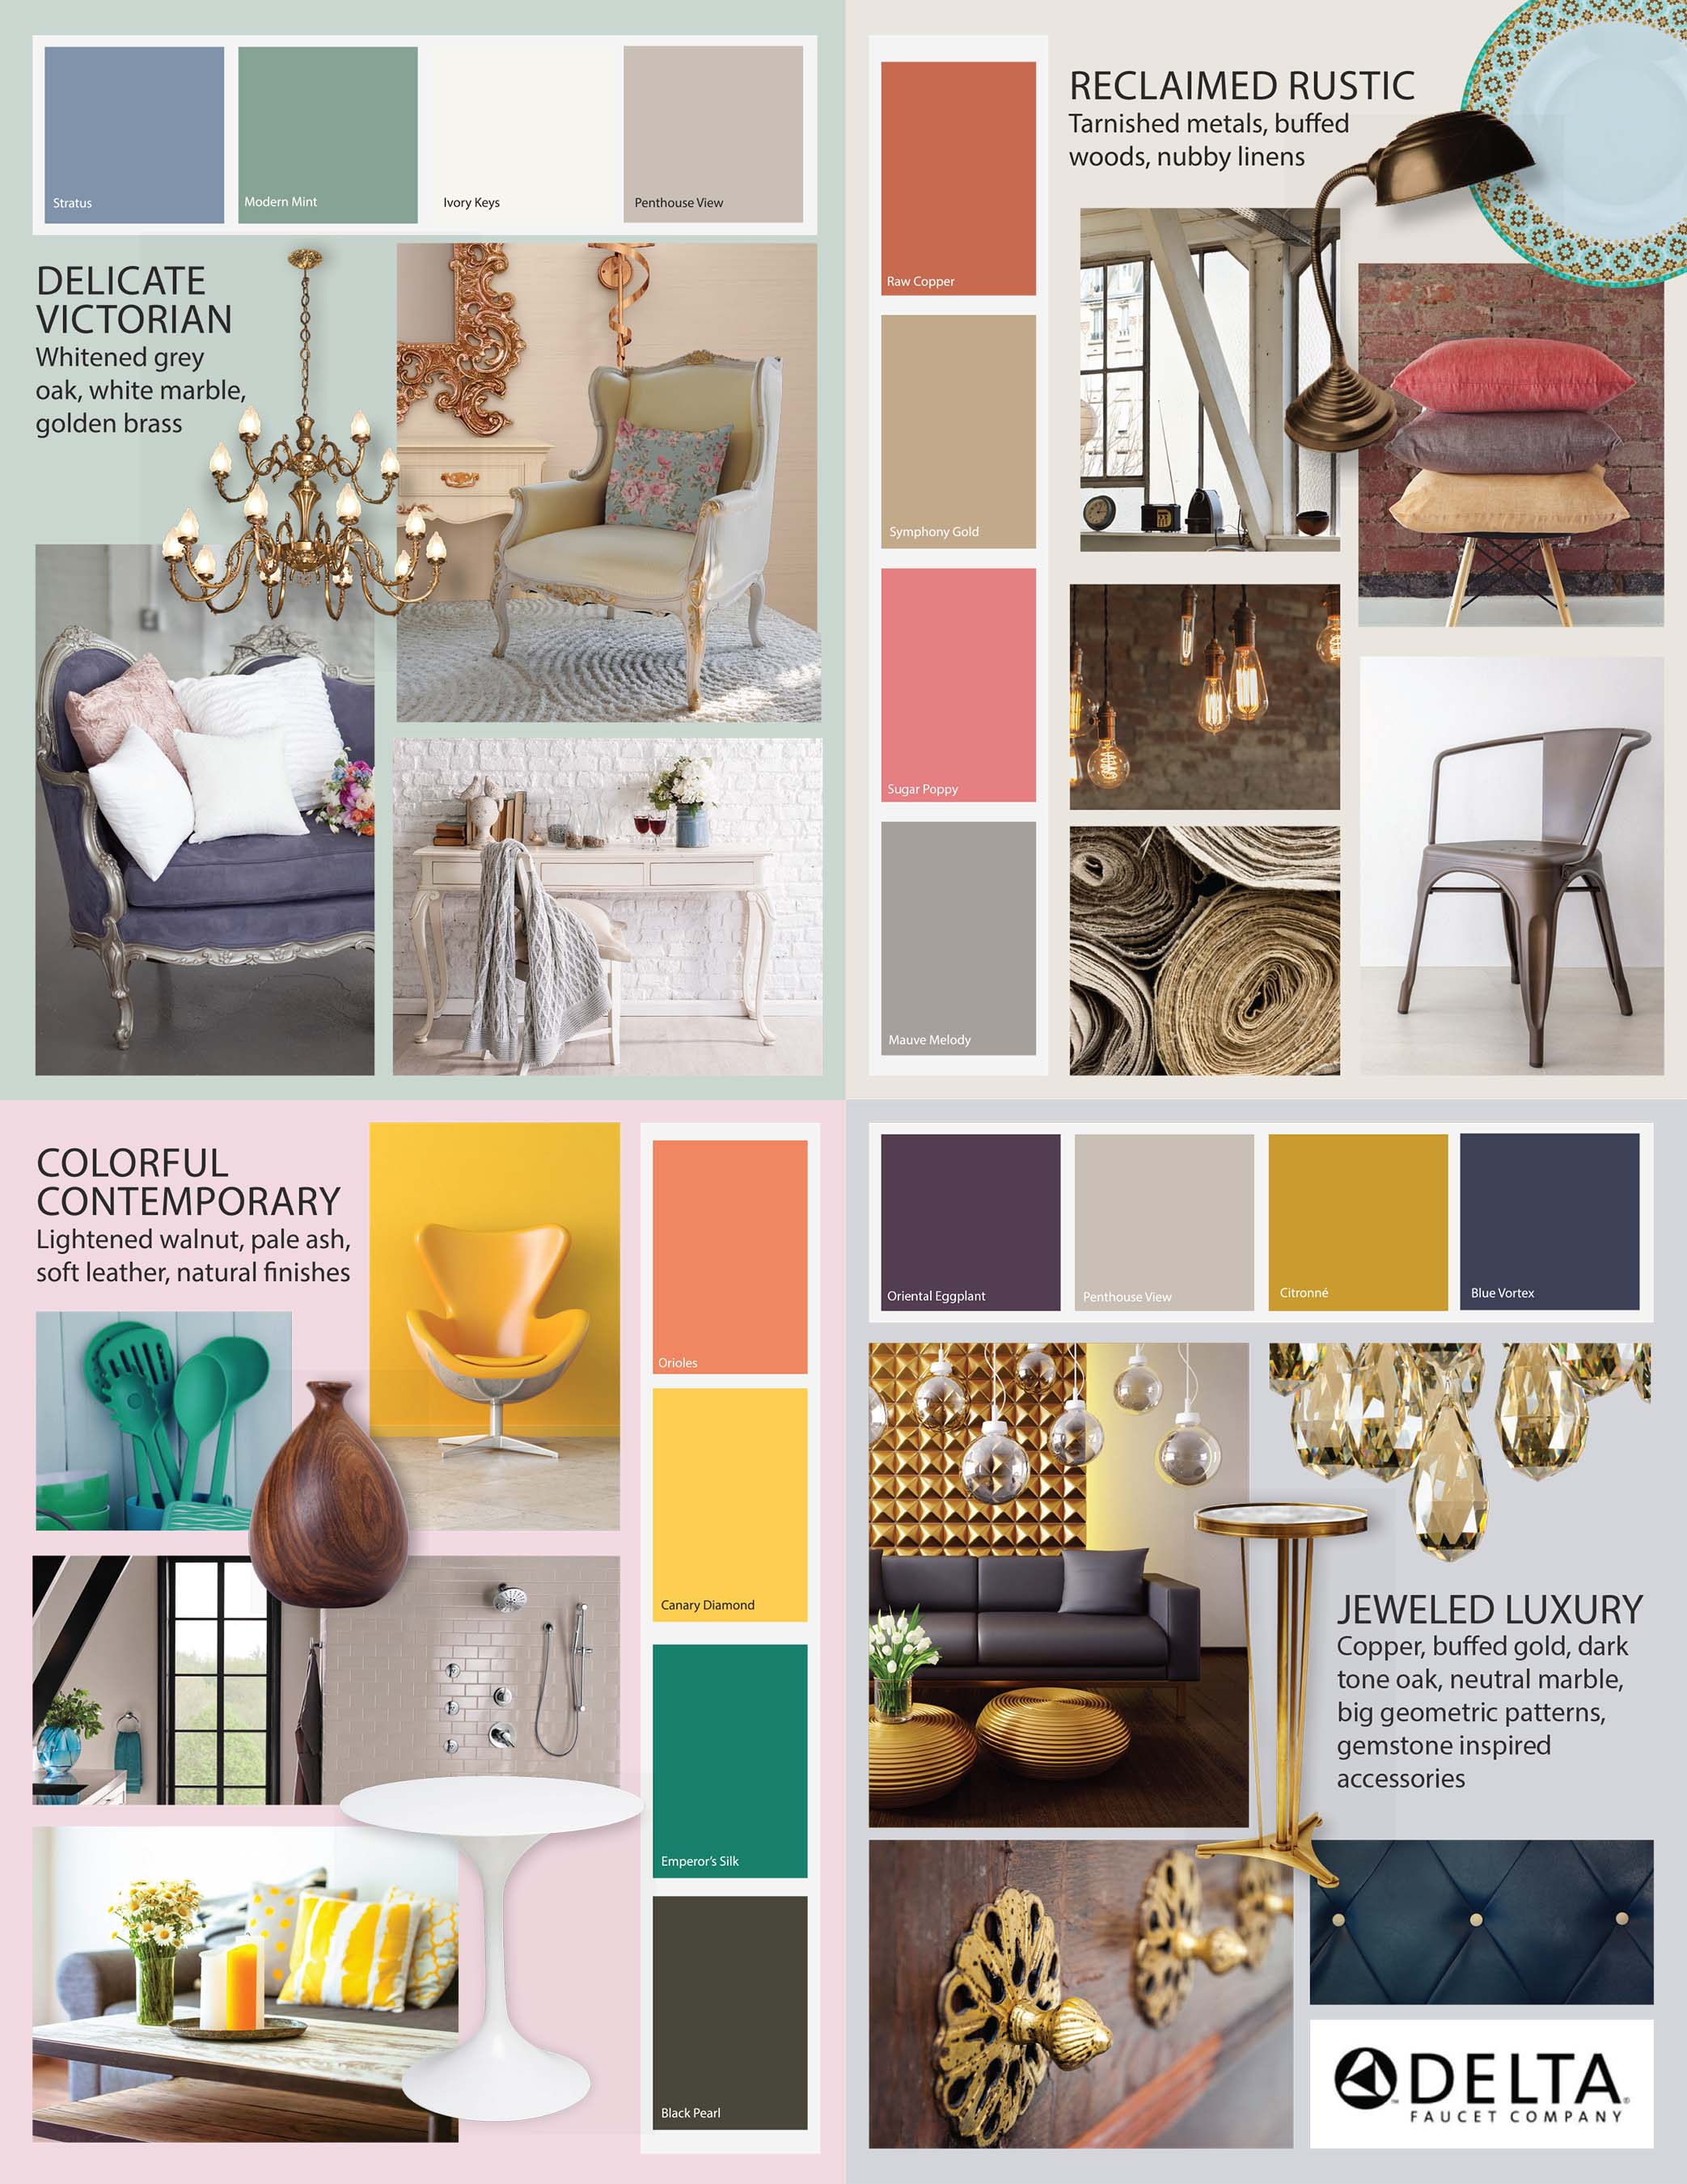 Merveilleux 2016 Interior Design Trend Report